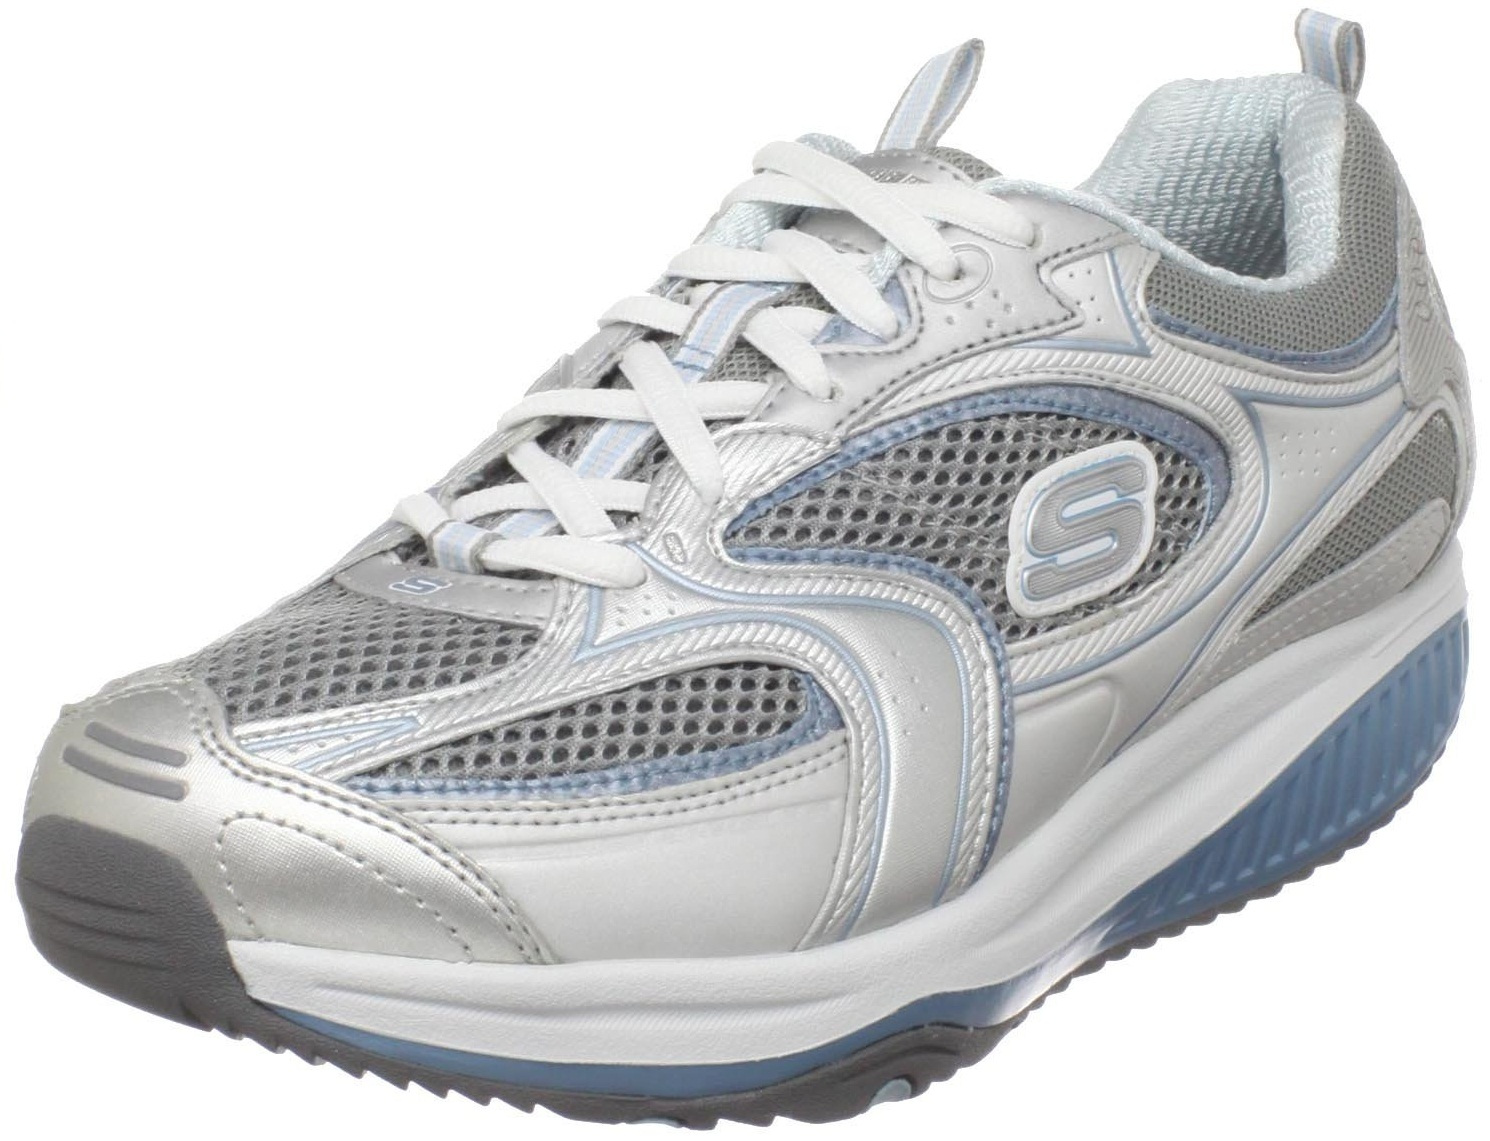 Skechers Shape Ups 'XF-Accelerators' Sneaker Shoe at Sears.com